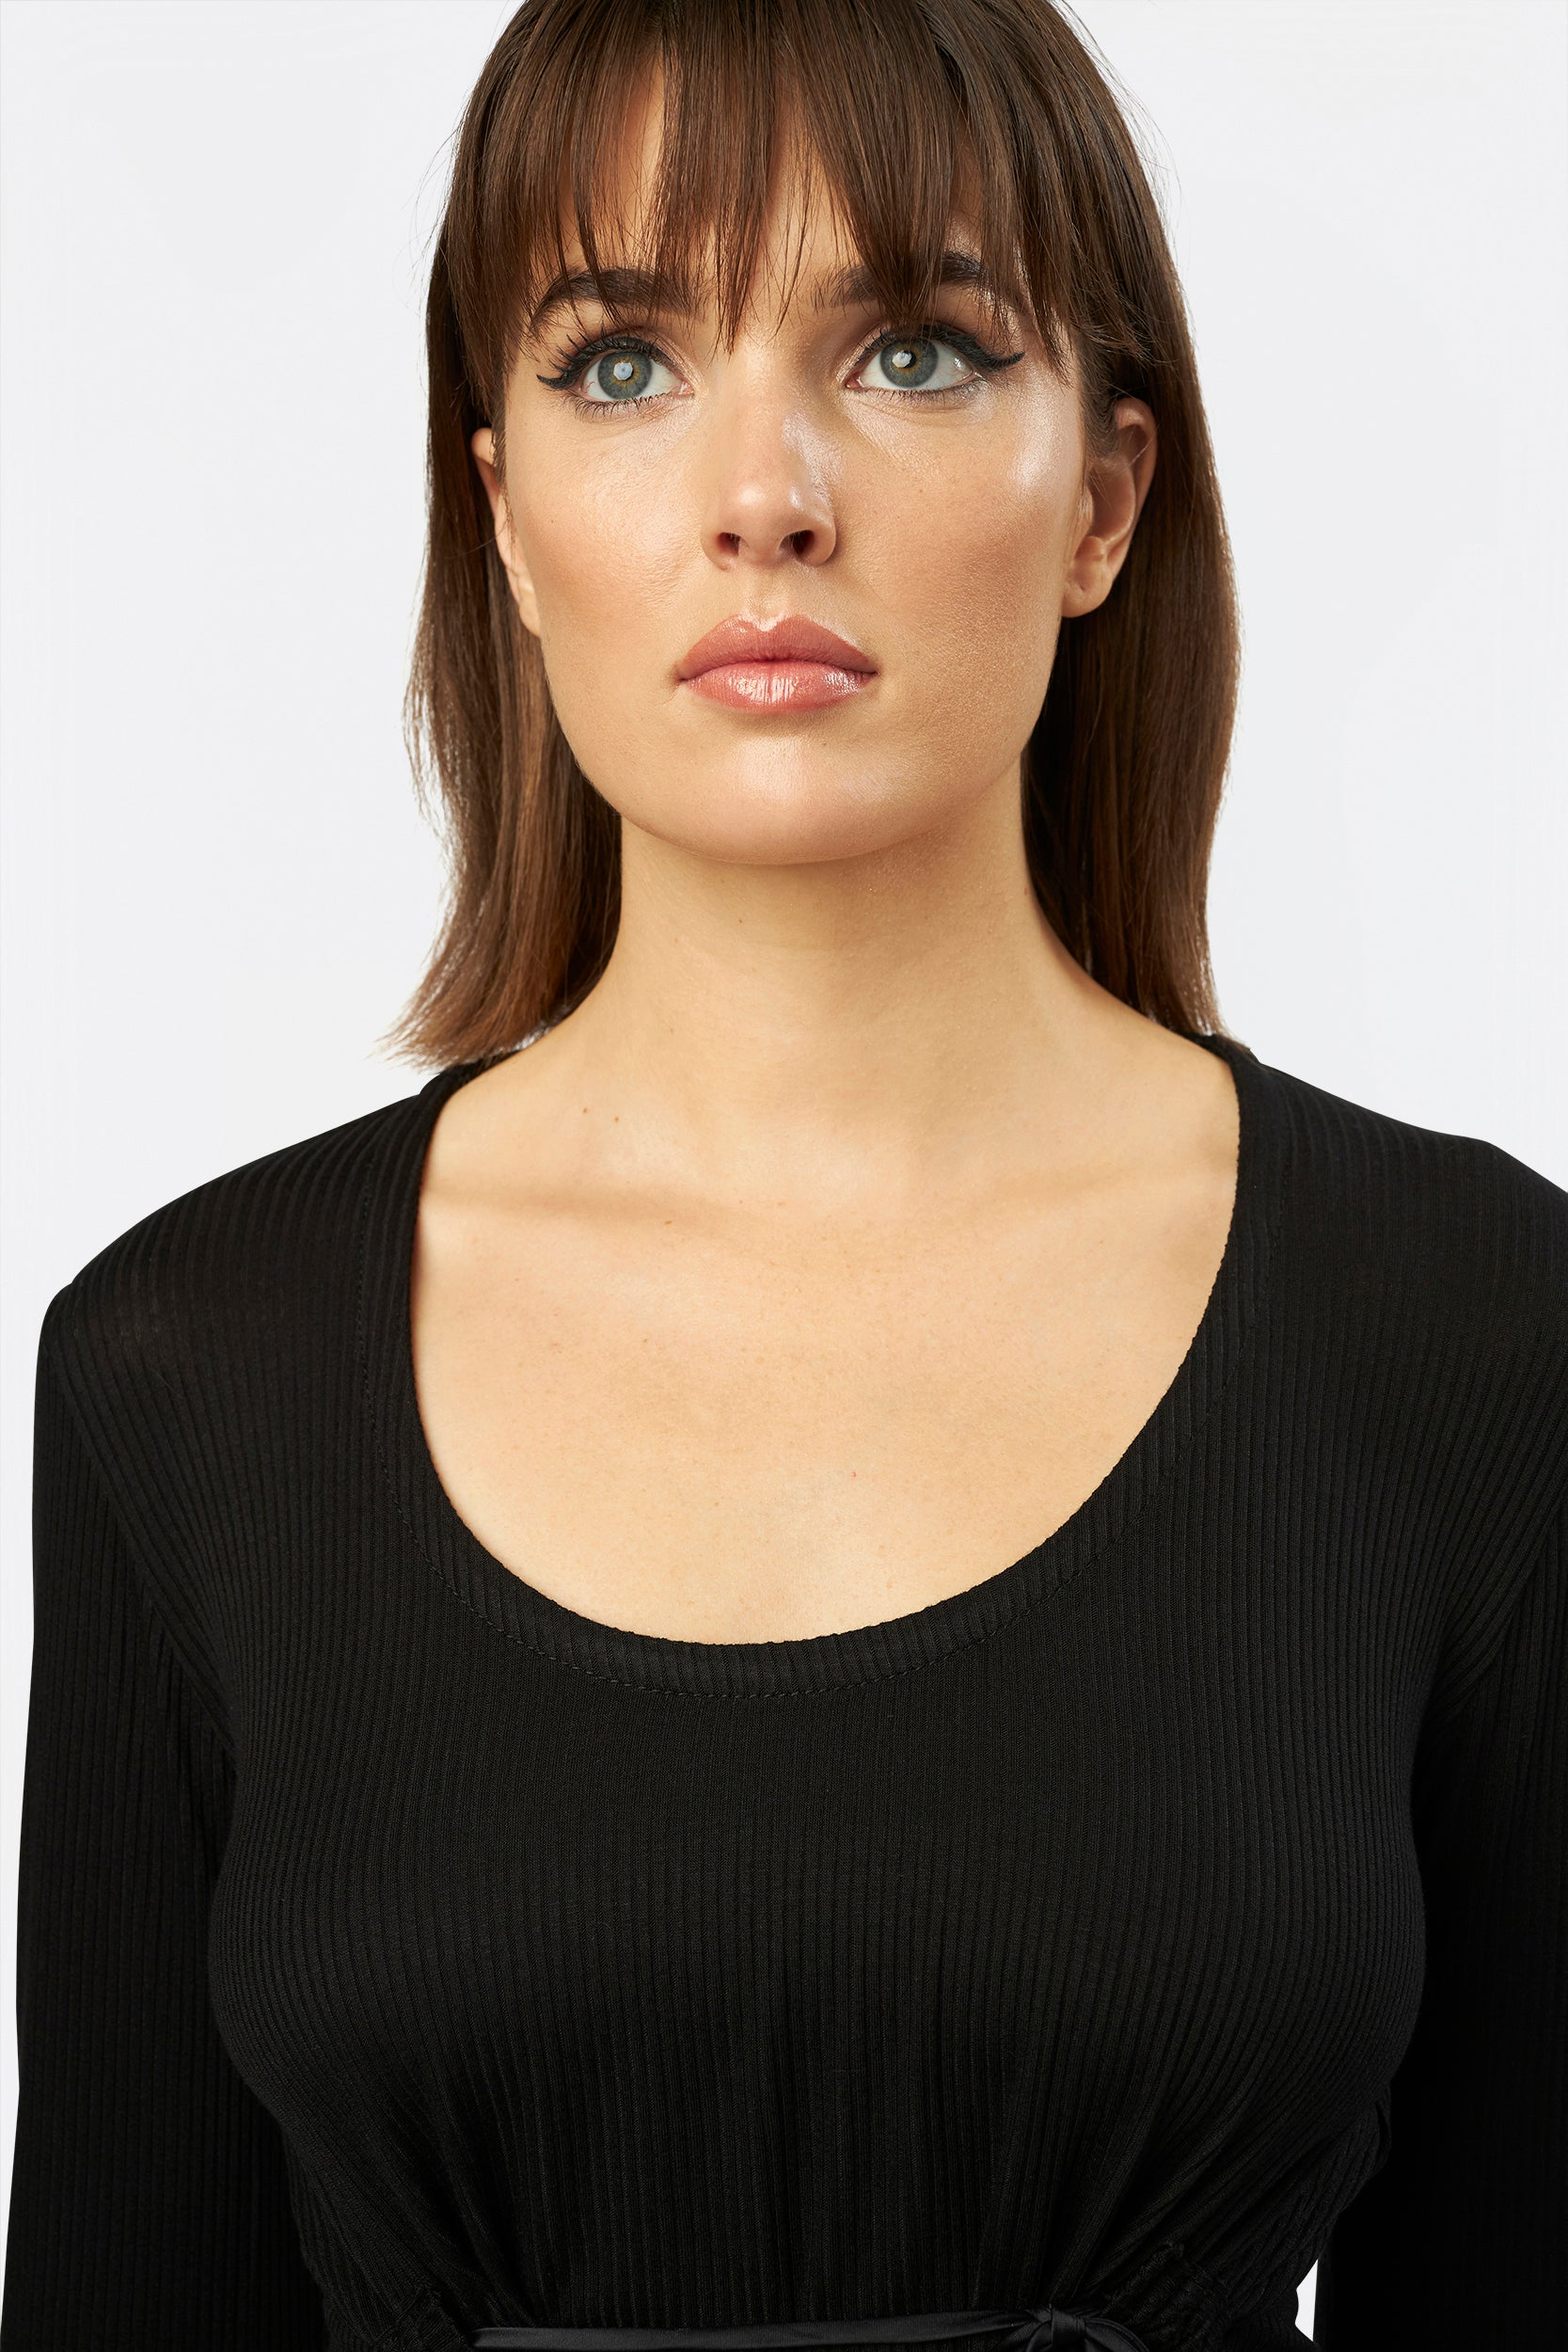 Cool Casing Knit Top by INLARKIN with scoop neck and perfectly placed drawstring to lift in all the right places